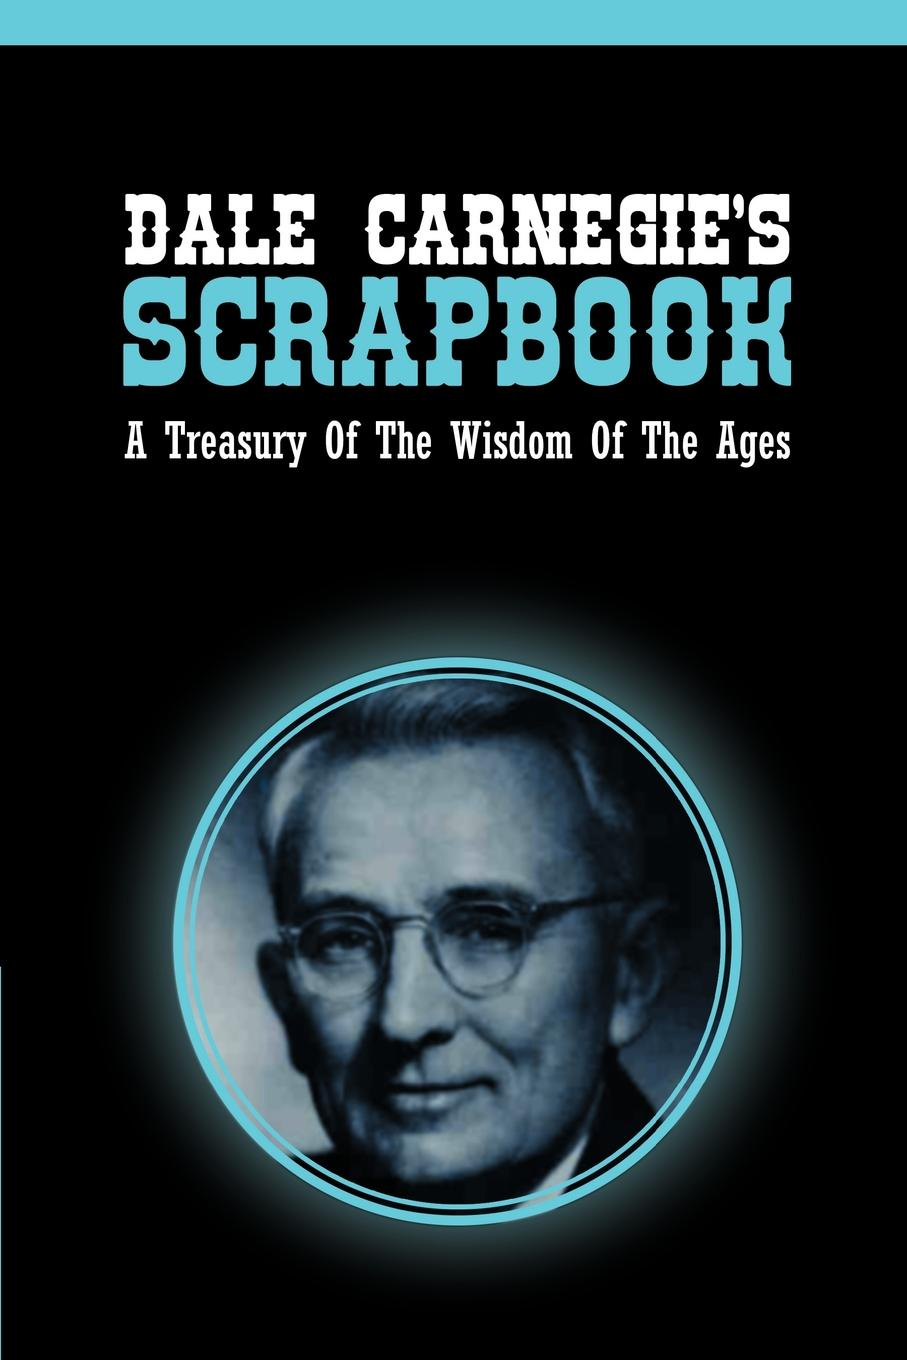 лучшая цена Dale Carnegie Dale Carnegie.s Scrapbook. A Treasury Of The Wisdom Of The Ages